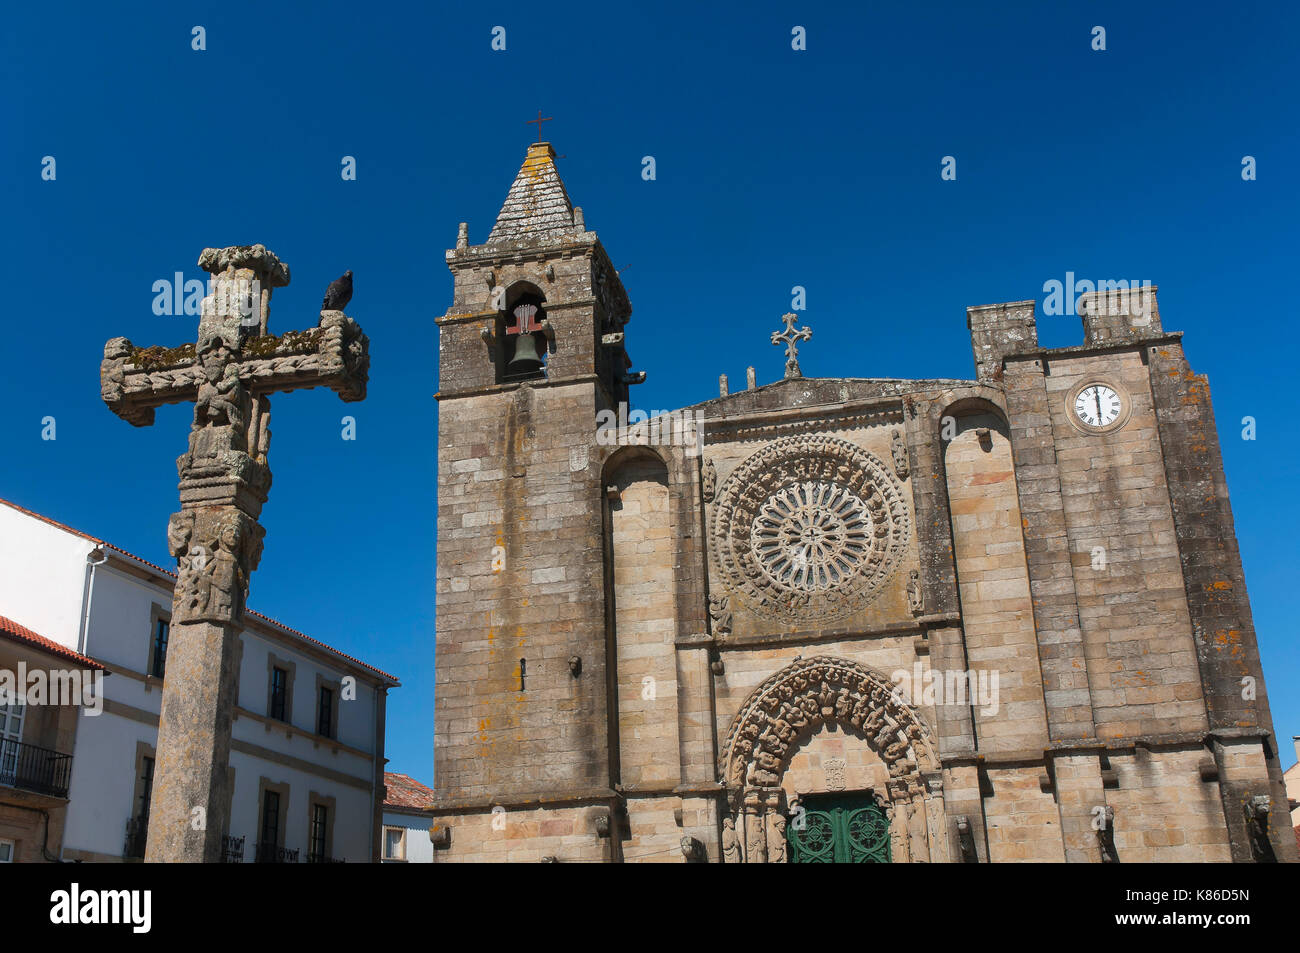 Church of San Martin (15th century) and traditional Cruceiro, Noya, La Coruna province, Region of Galicia, Spain, Europe - Stock Image